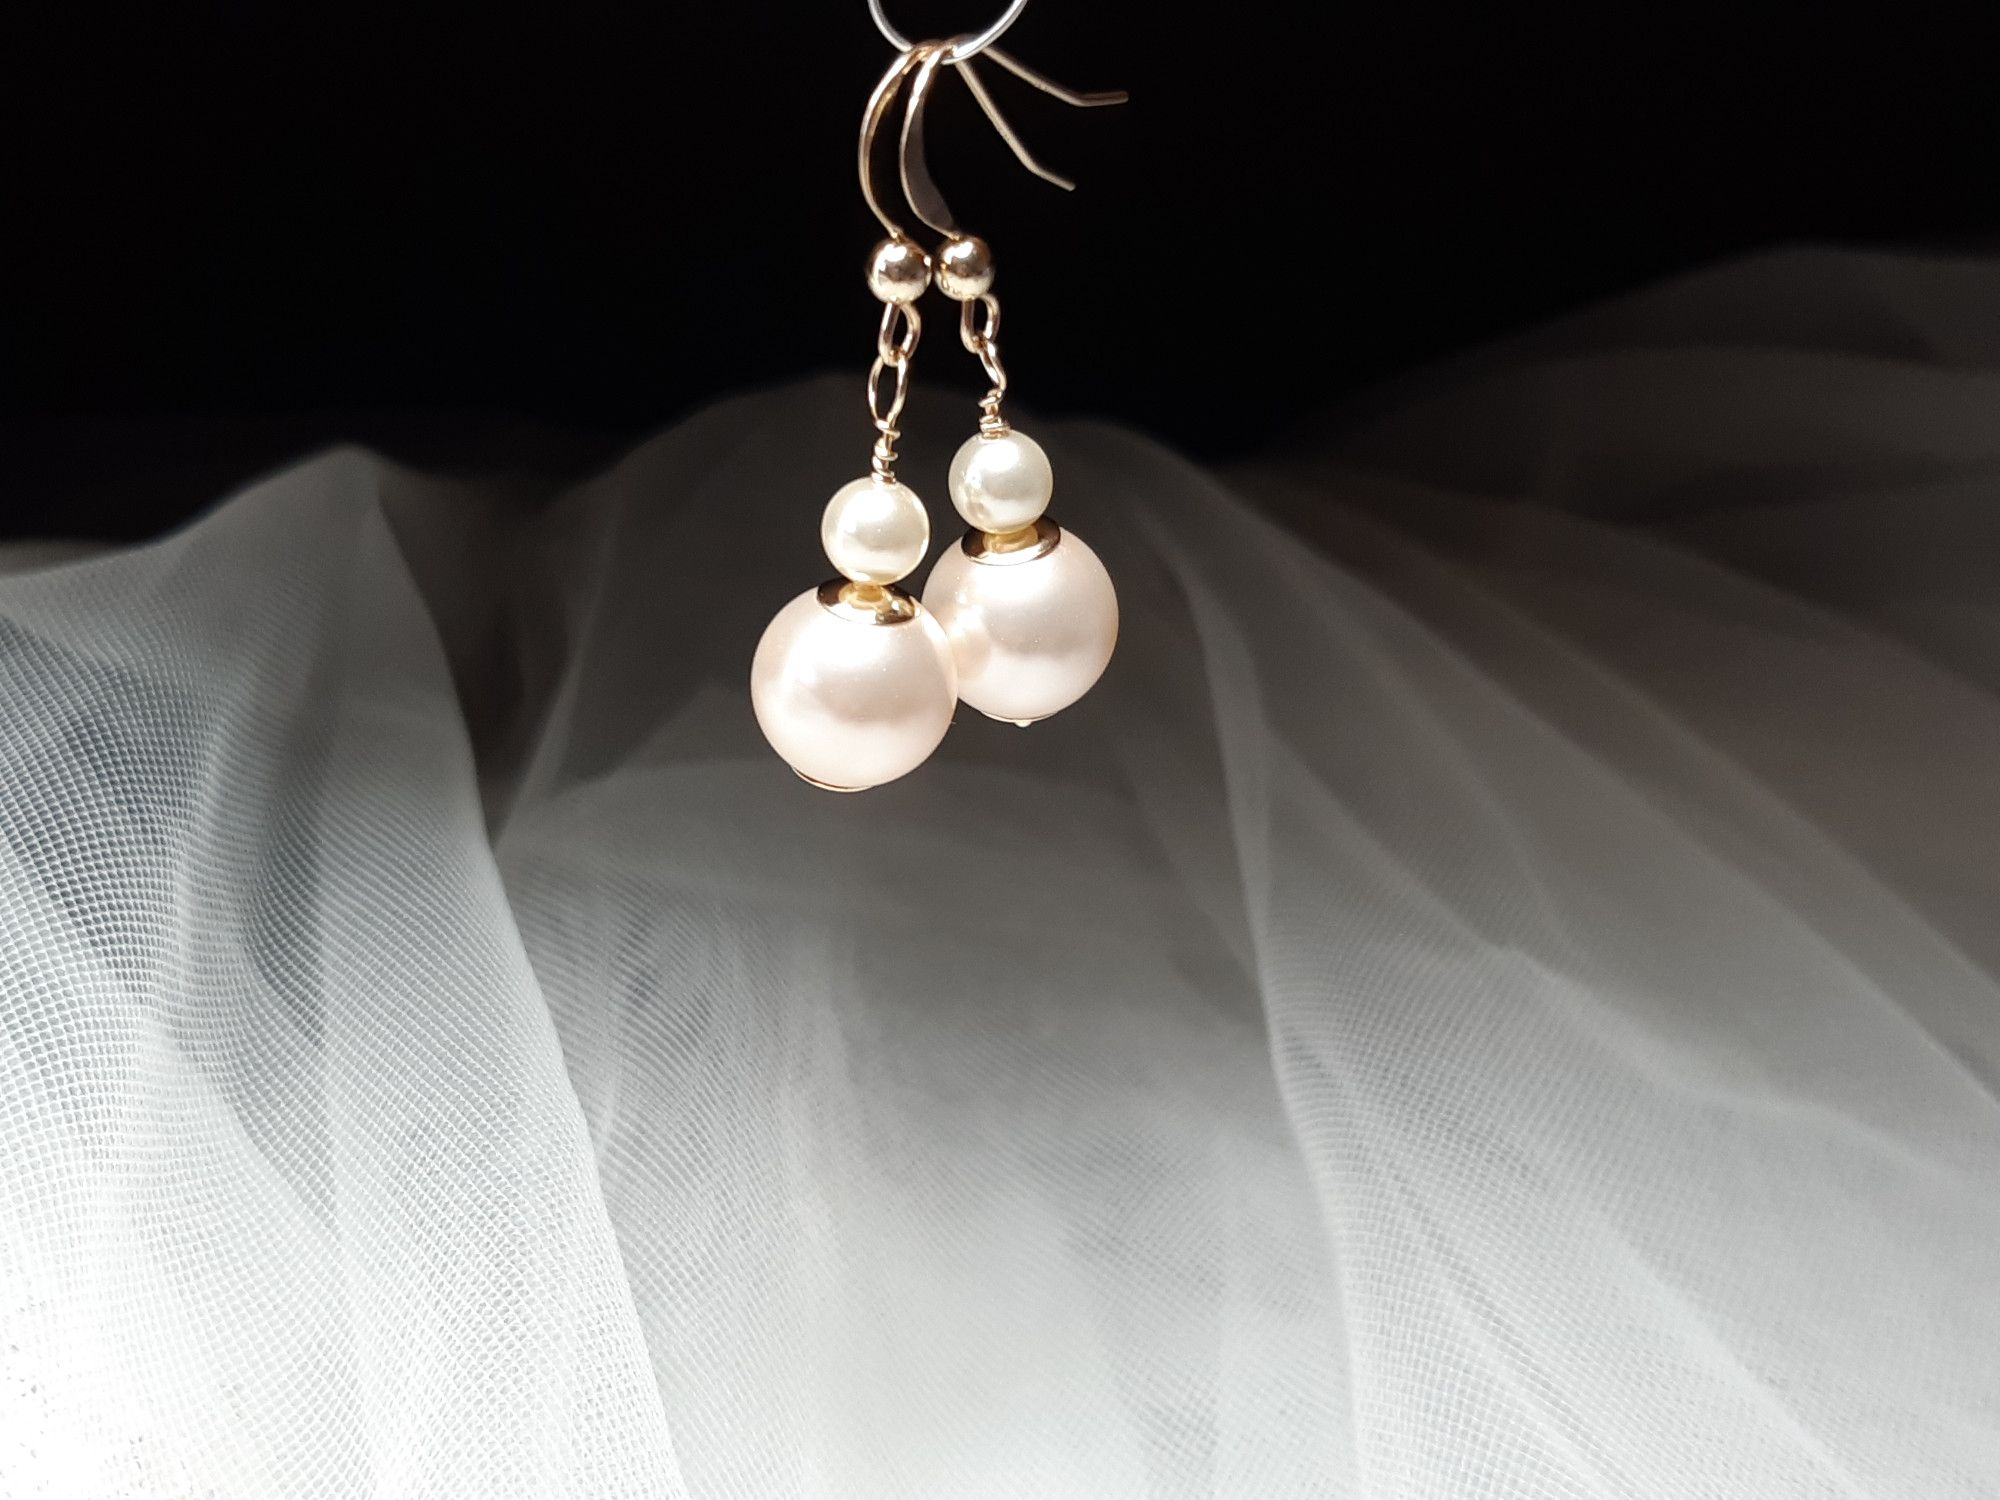 Occasion-bridal-wedding-earrings with 14K gold & pearls-6.jpg